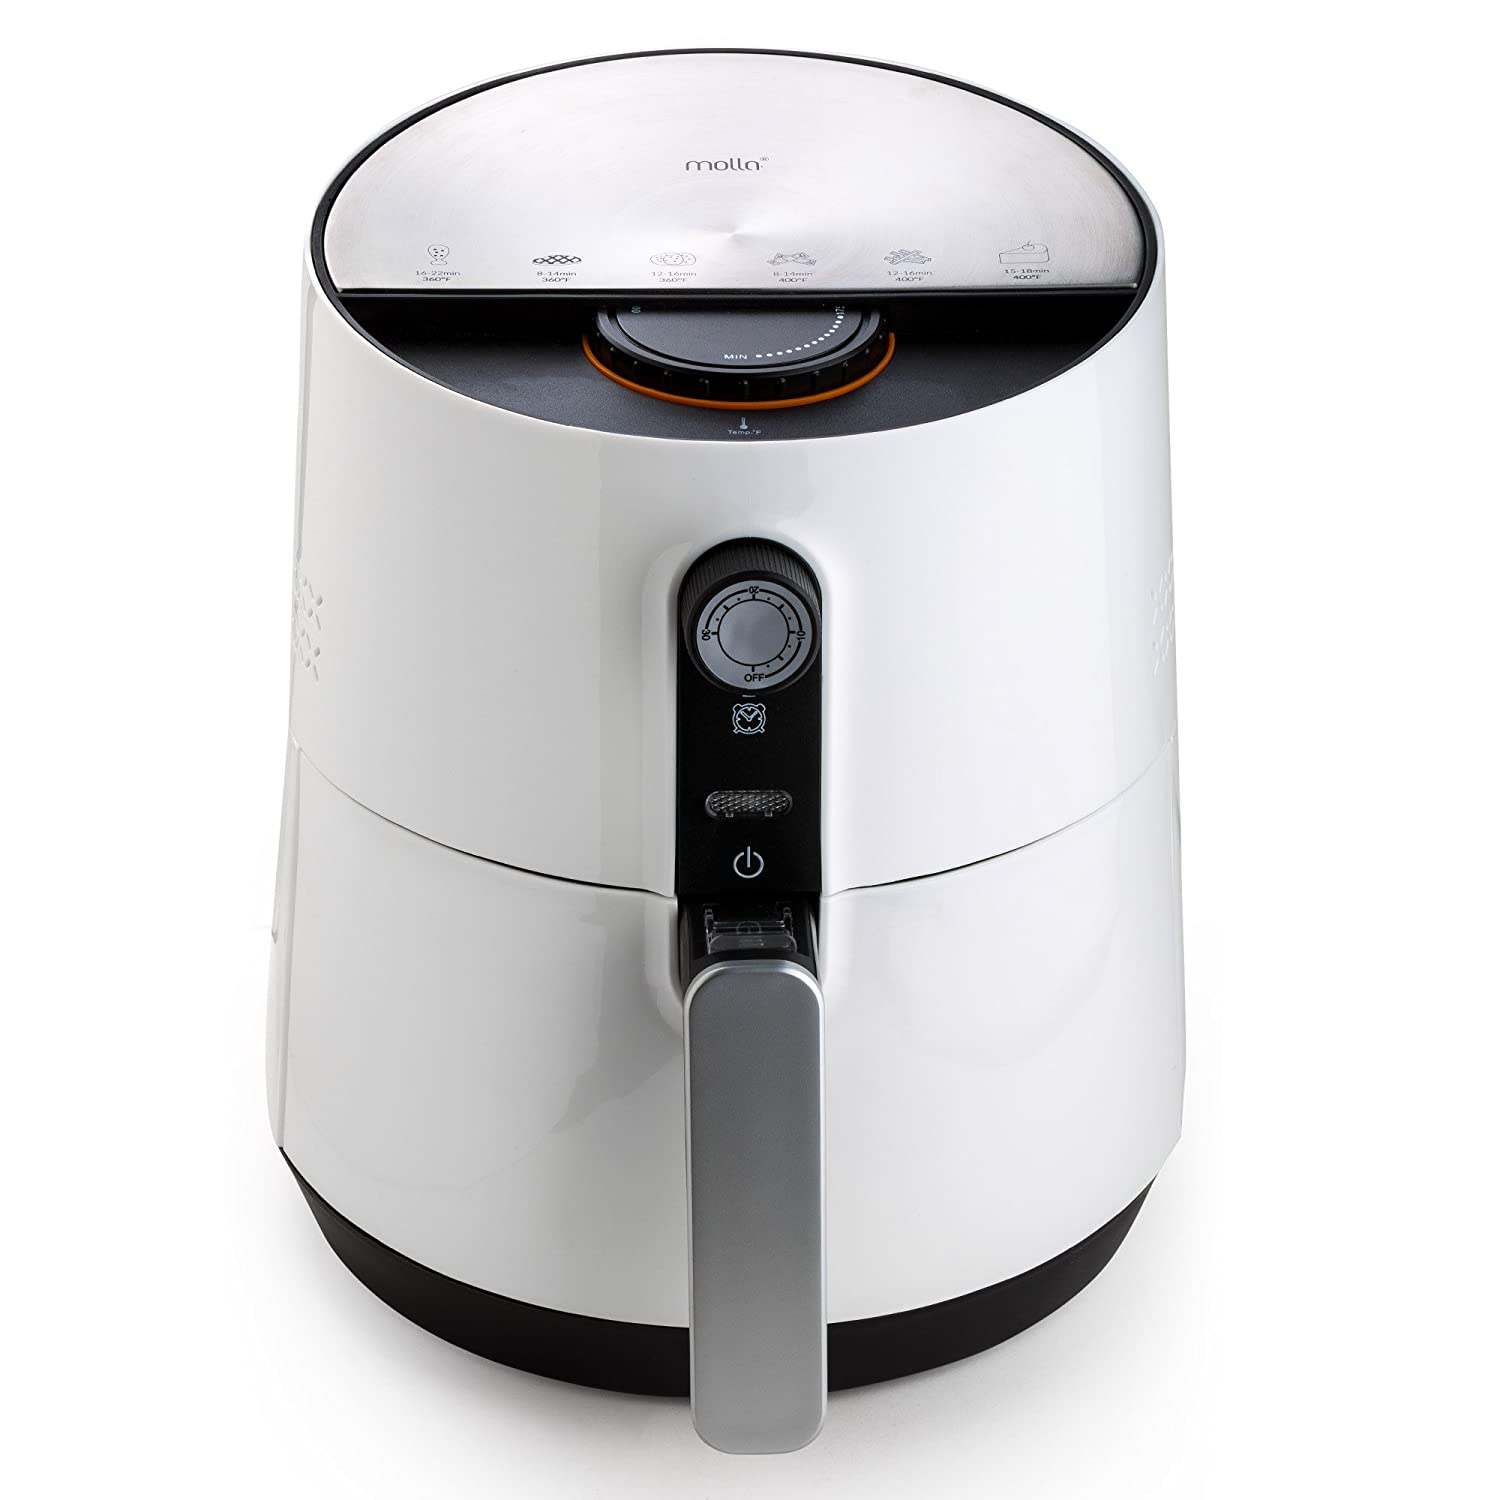 Molla AirSmart Air Fryer, 2.6L in Elegant White with Accessories and Gourmet Recipe Booklet